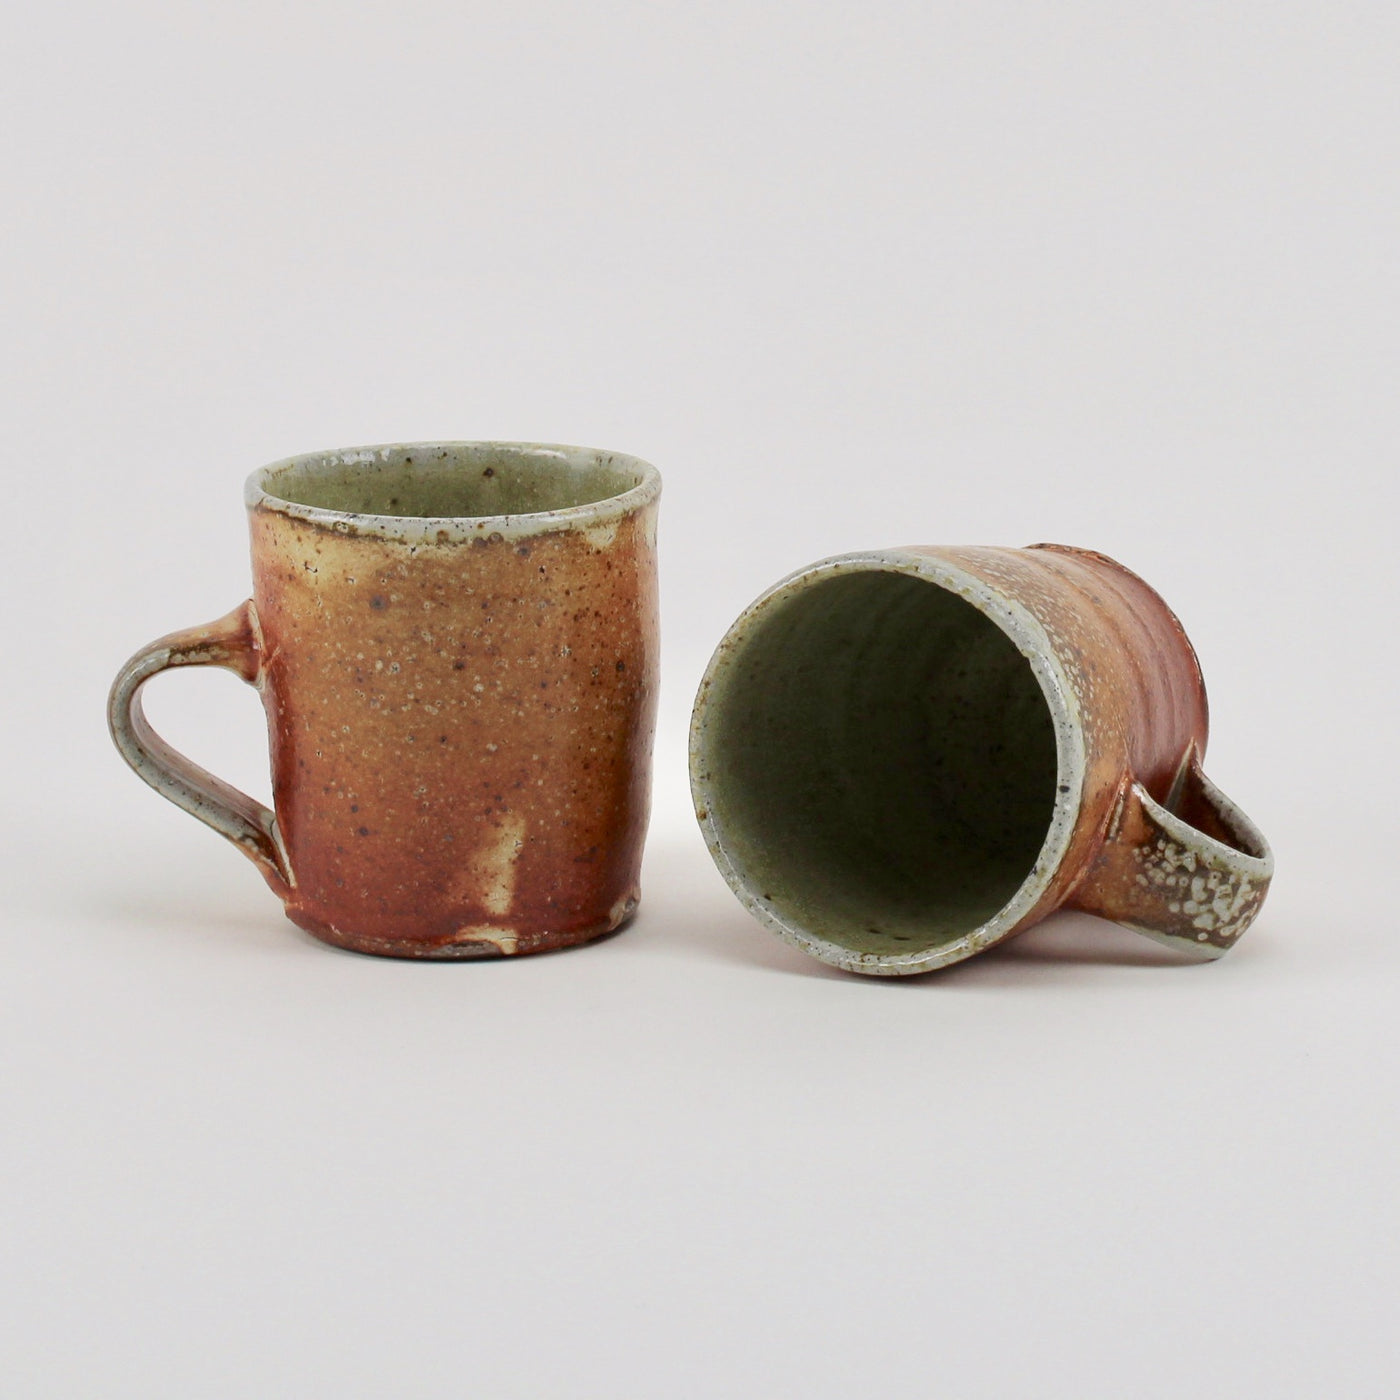 Soda glazed Mug